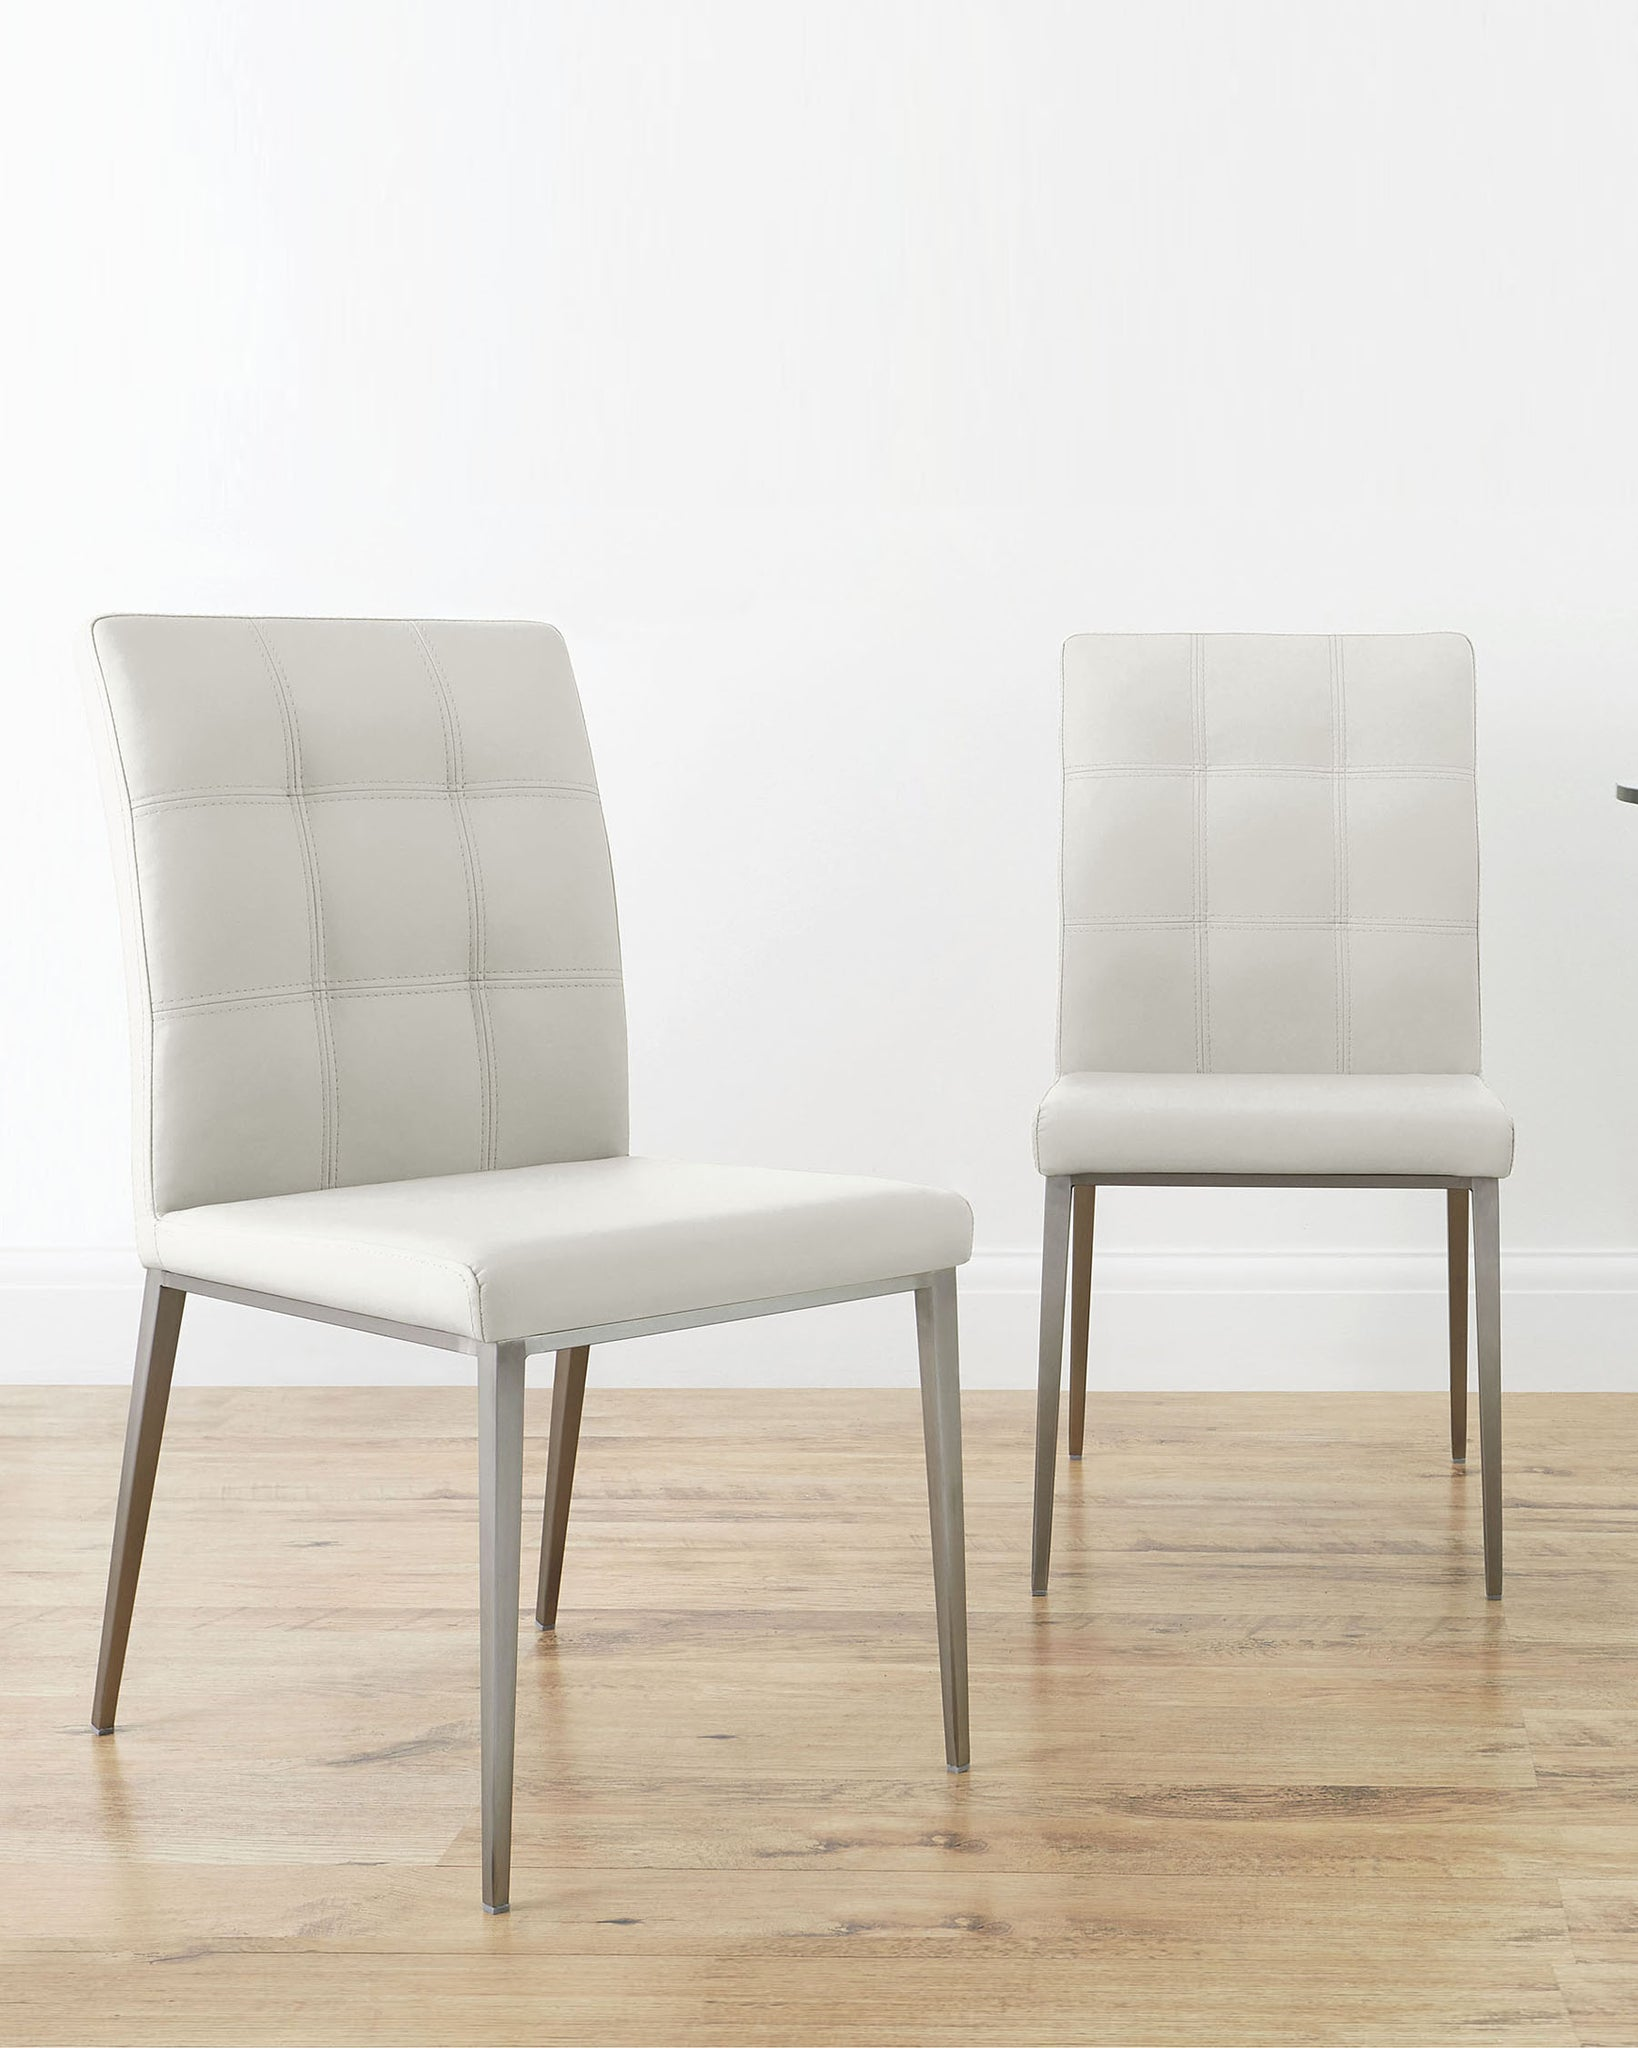 Moda White Faux Leather Dining Chair - Set Of 2